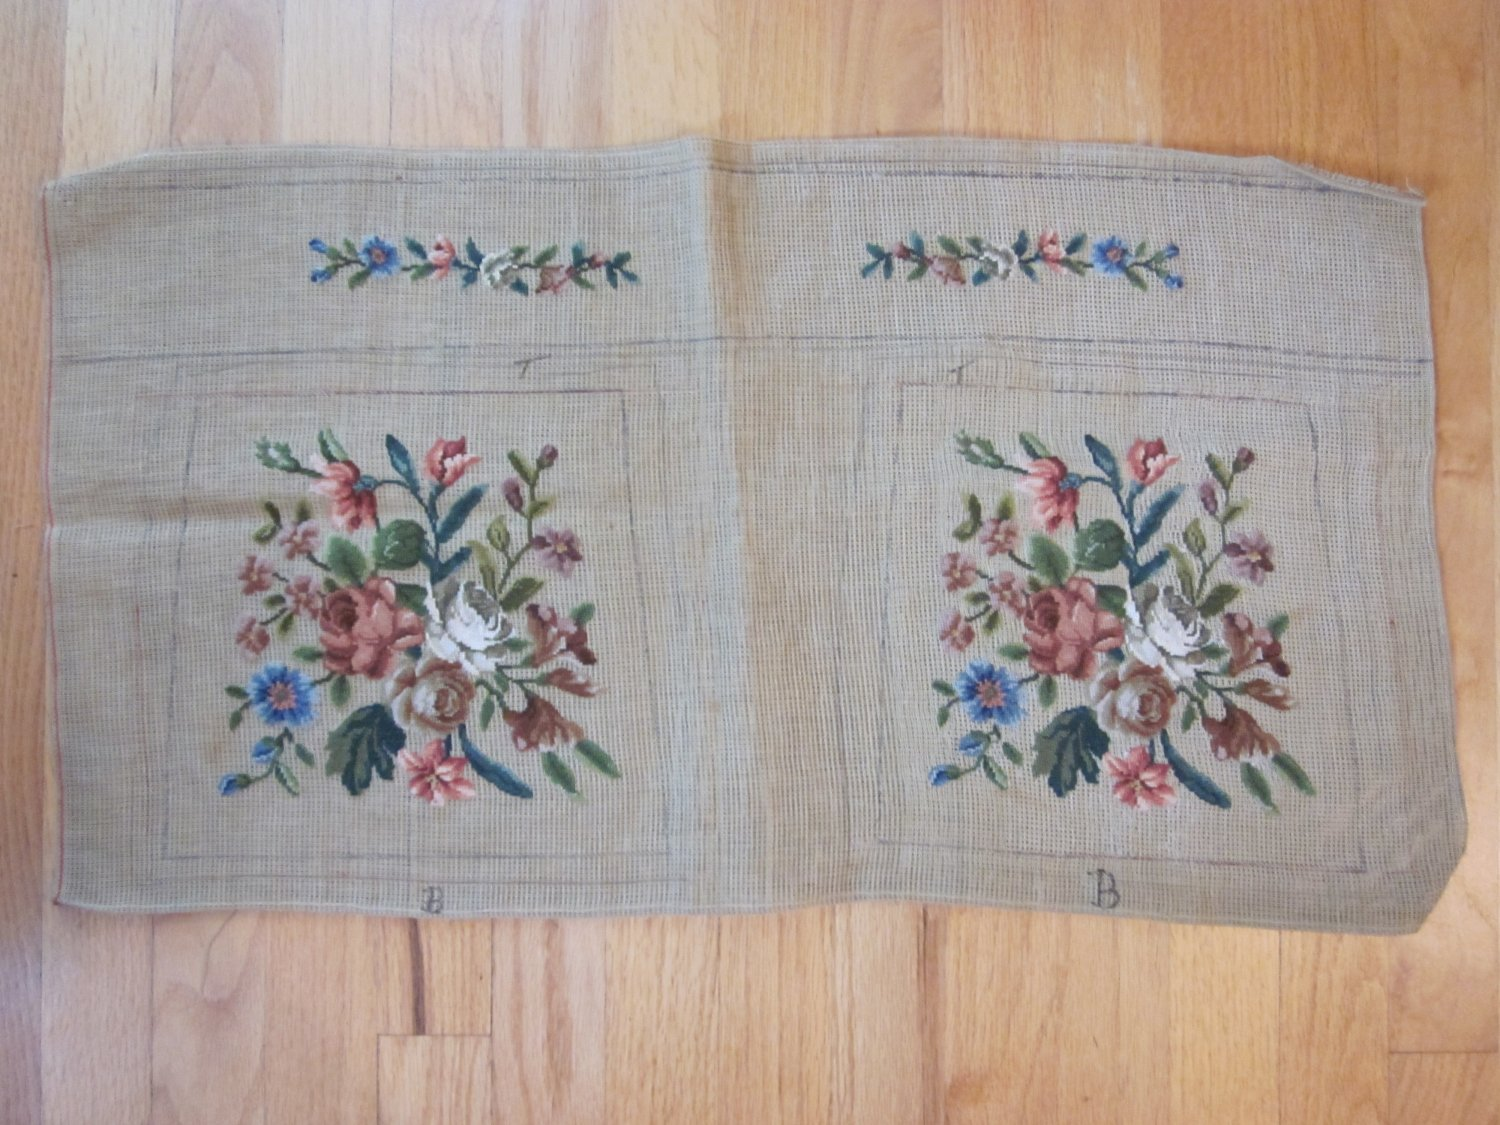 Vintage Needlepoint Purse Canvas with Preworked Floral Design Free Shipping